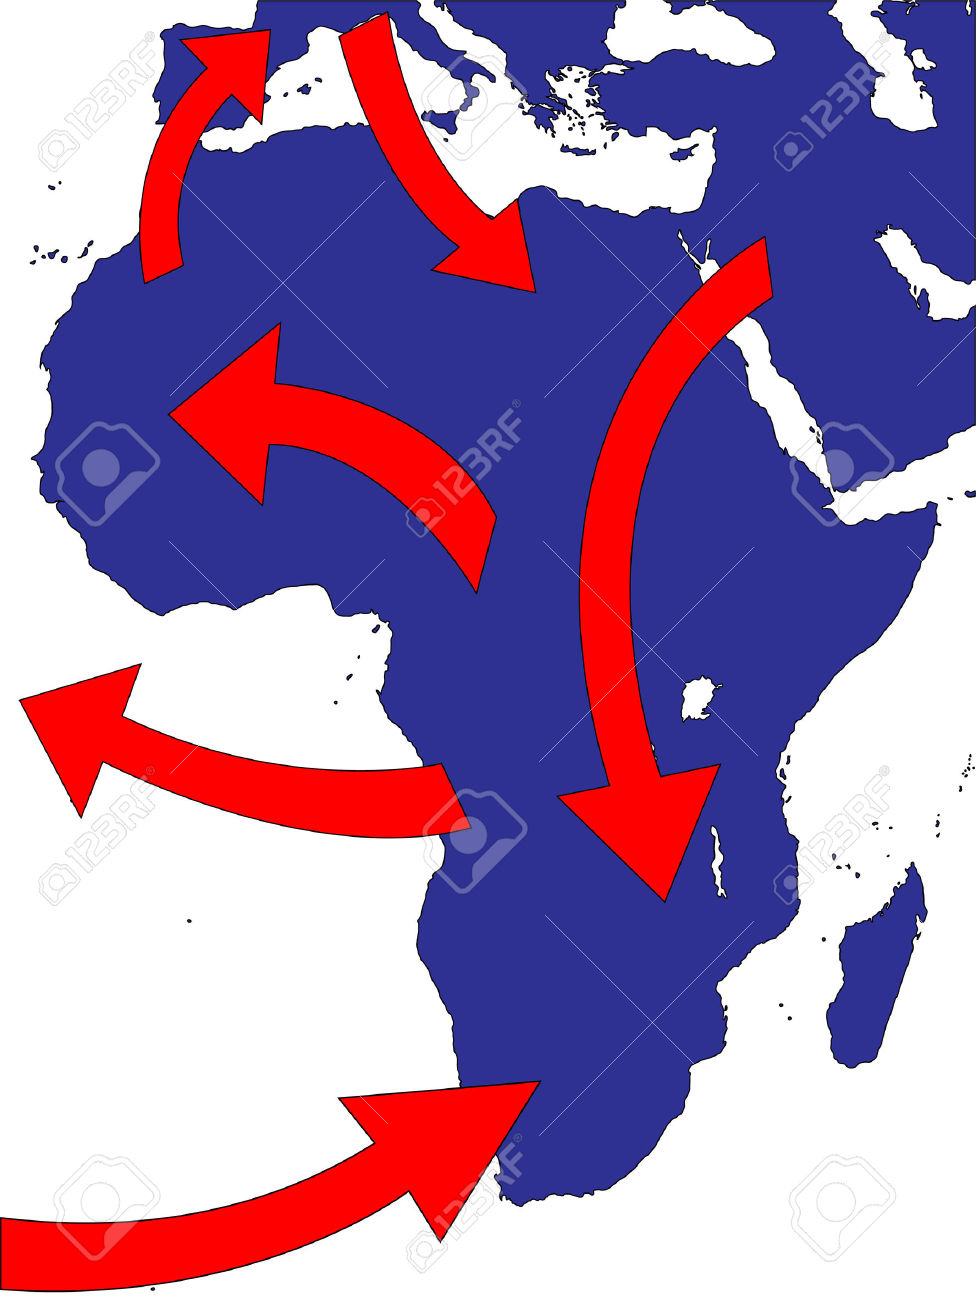 Africa Expansion Market Trade Routes Business Map Royalty Free.